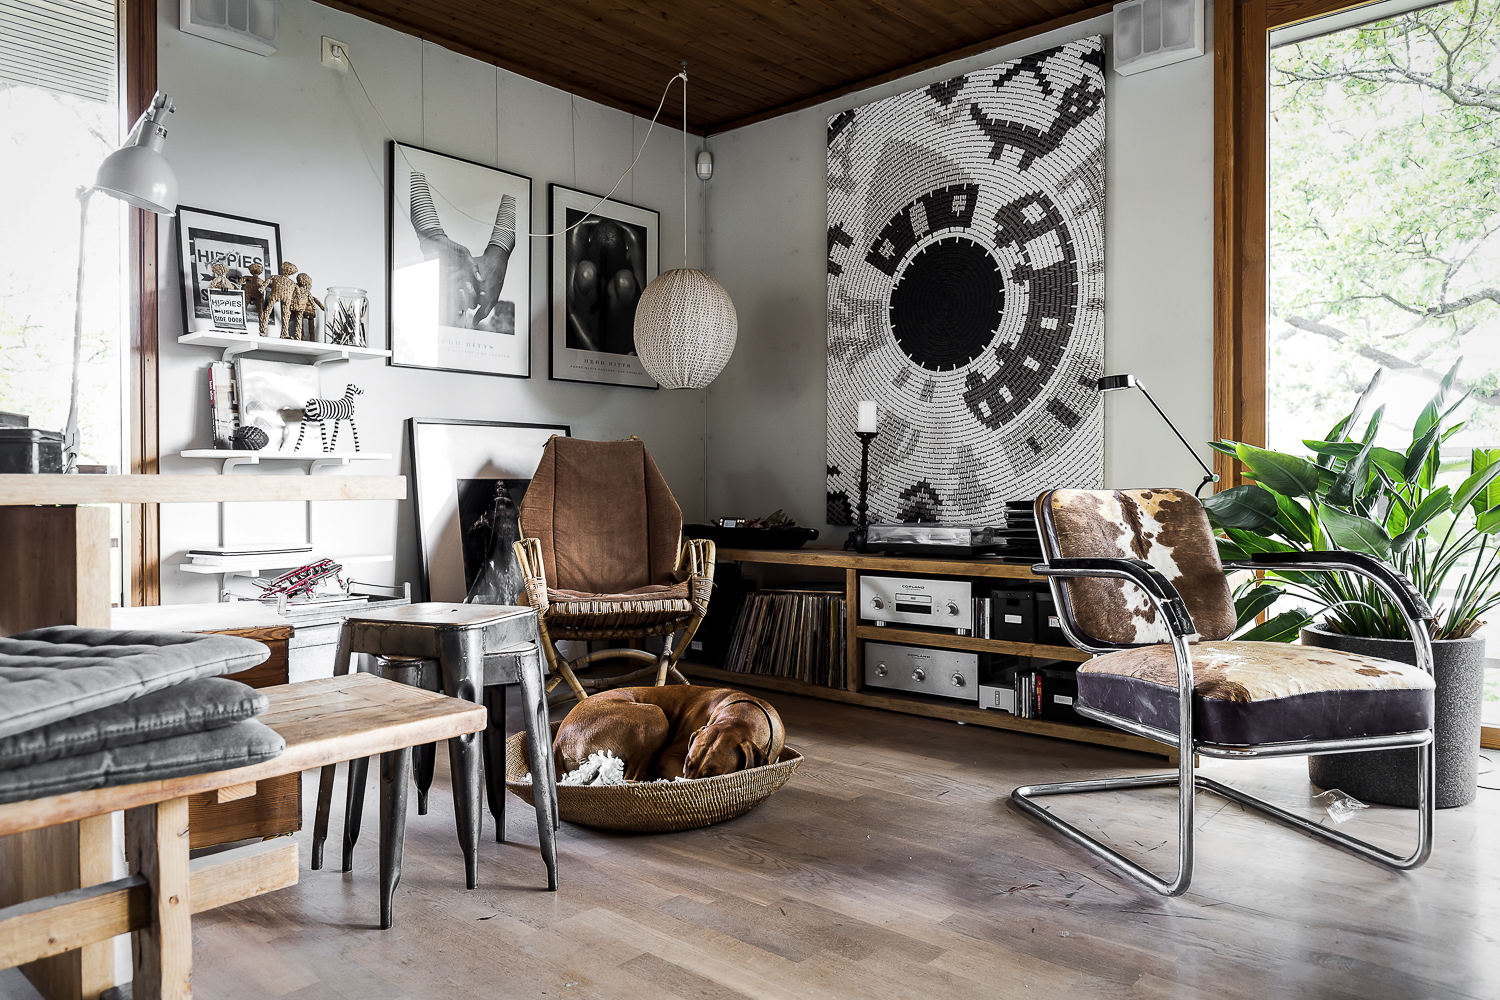 Scandinavian villa with oriental and rustic decor containing tolix chairs, Arne jacobsen lamp, cowhide chair and wood